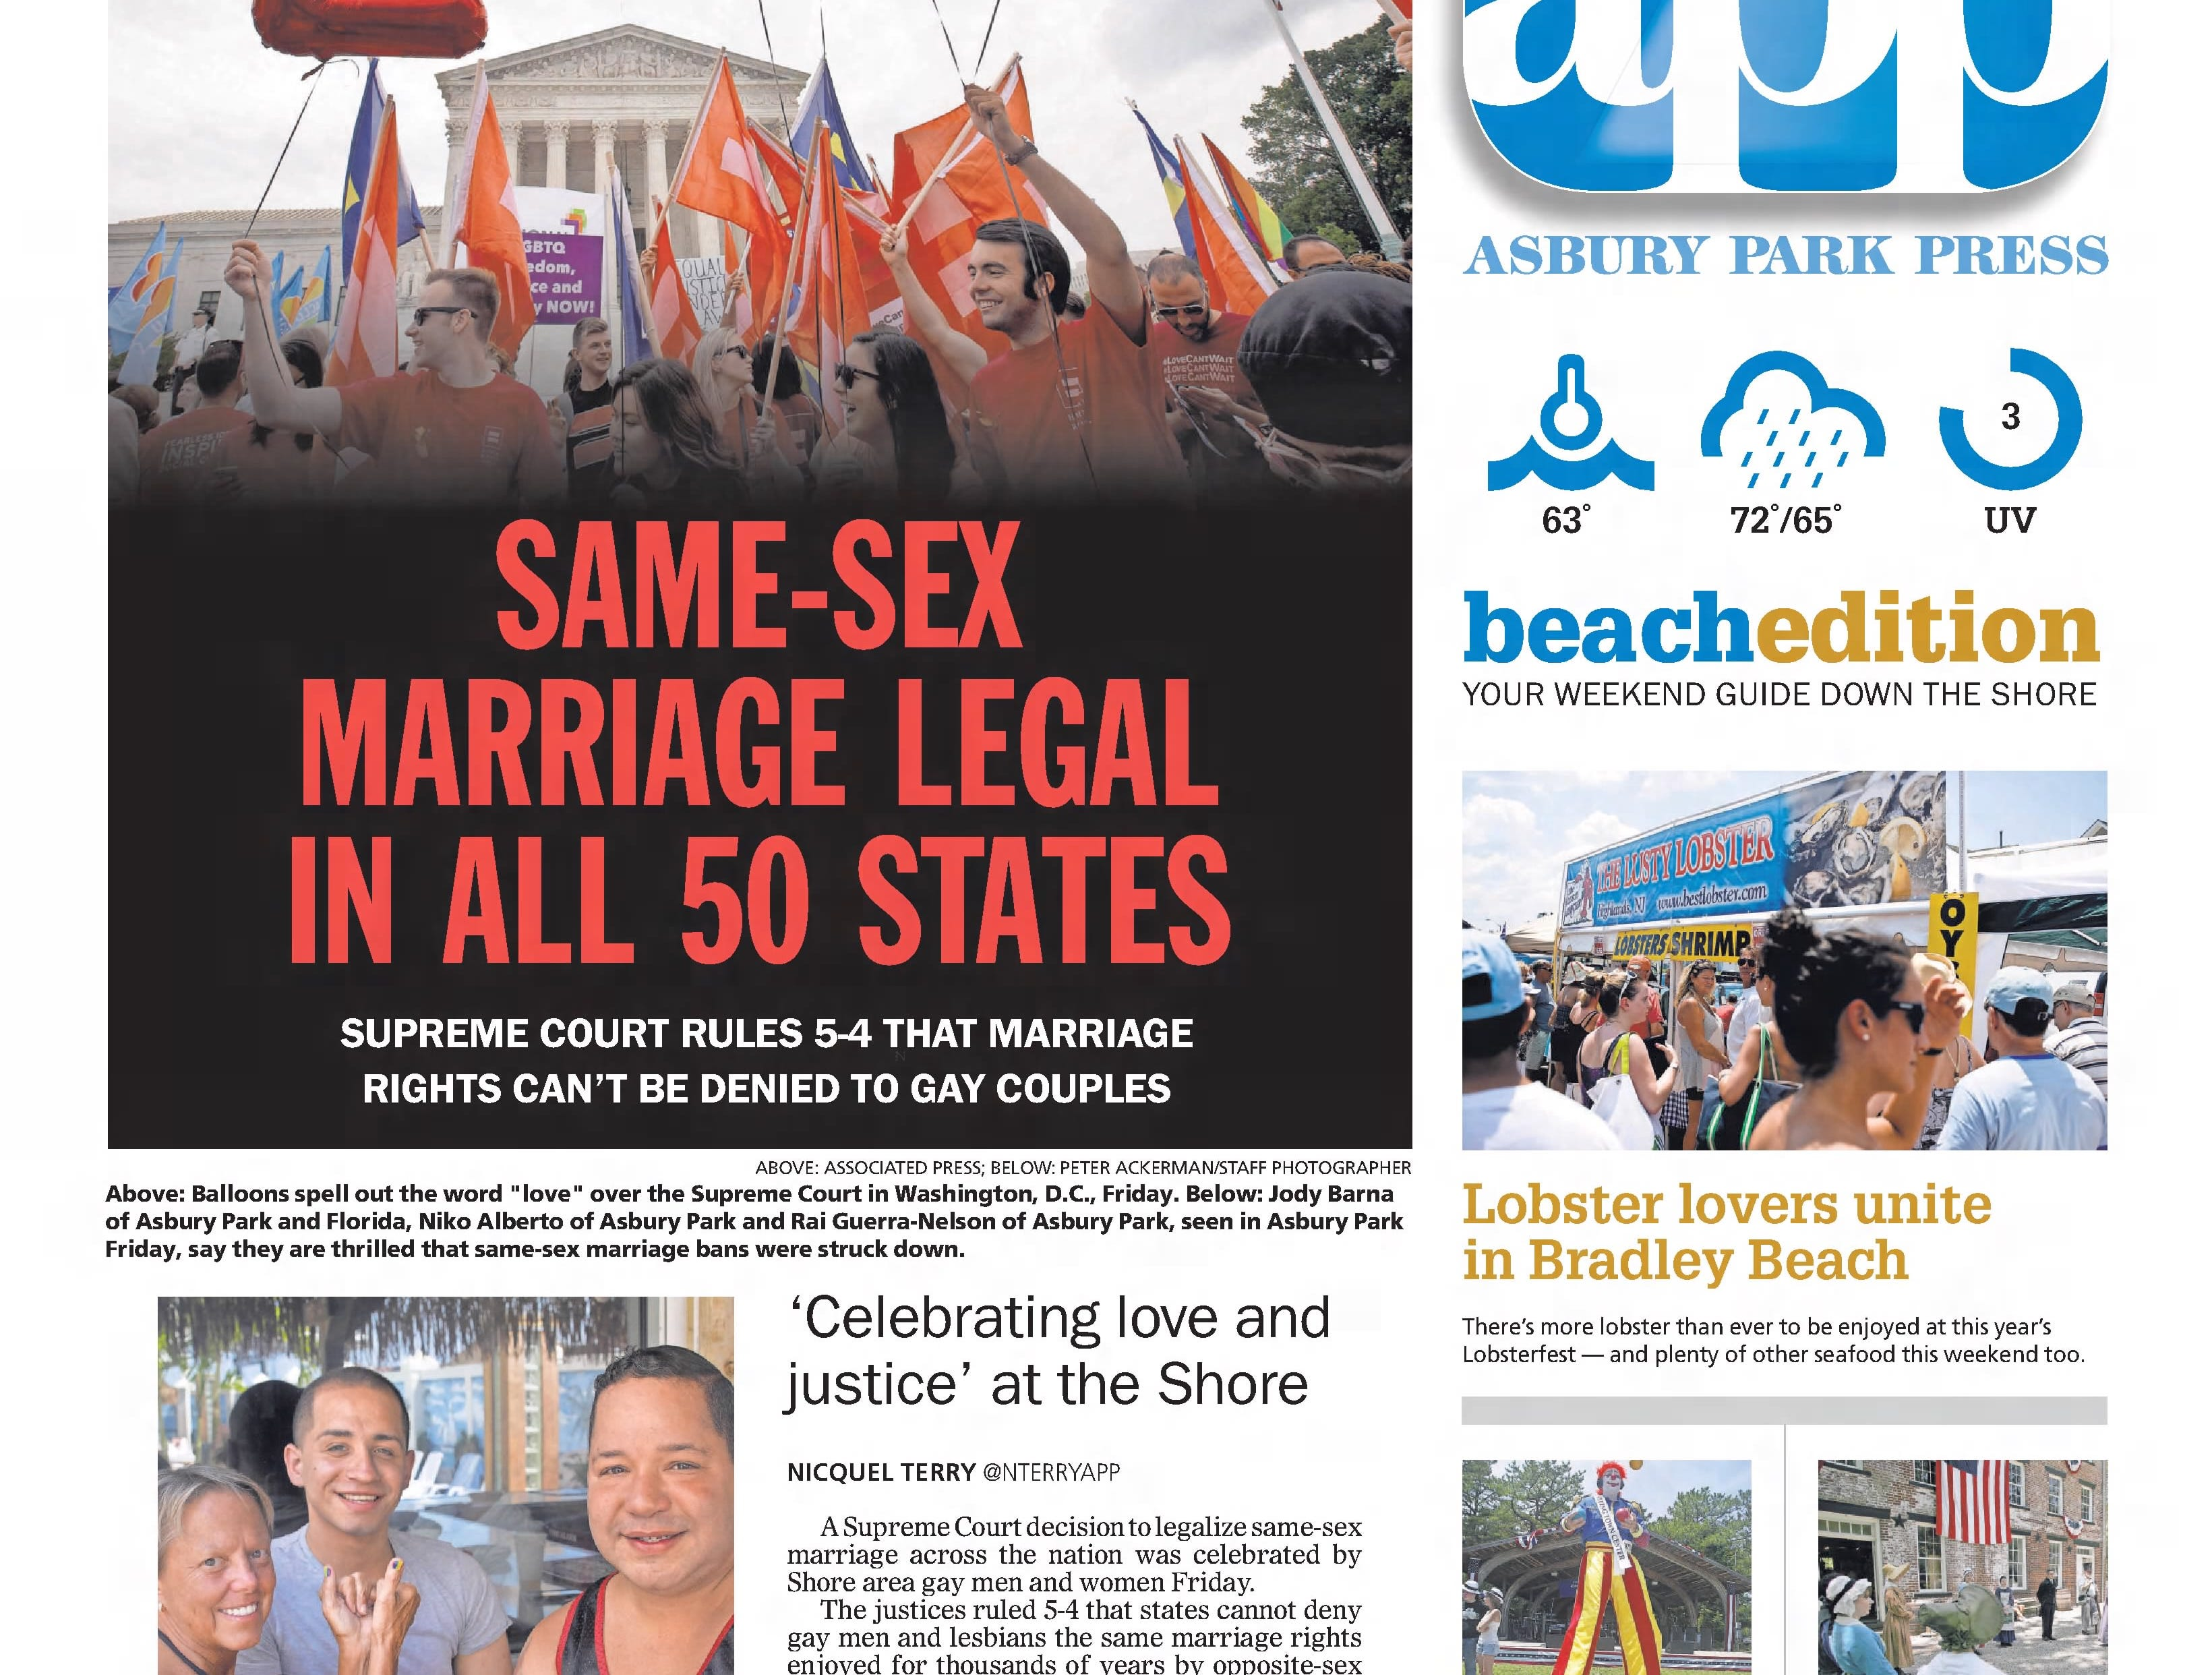 The U.S. Supreme Court legalizes same-sex marriage in all 50 states in this edition from Saturday, June 27, 2015.